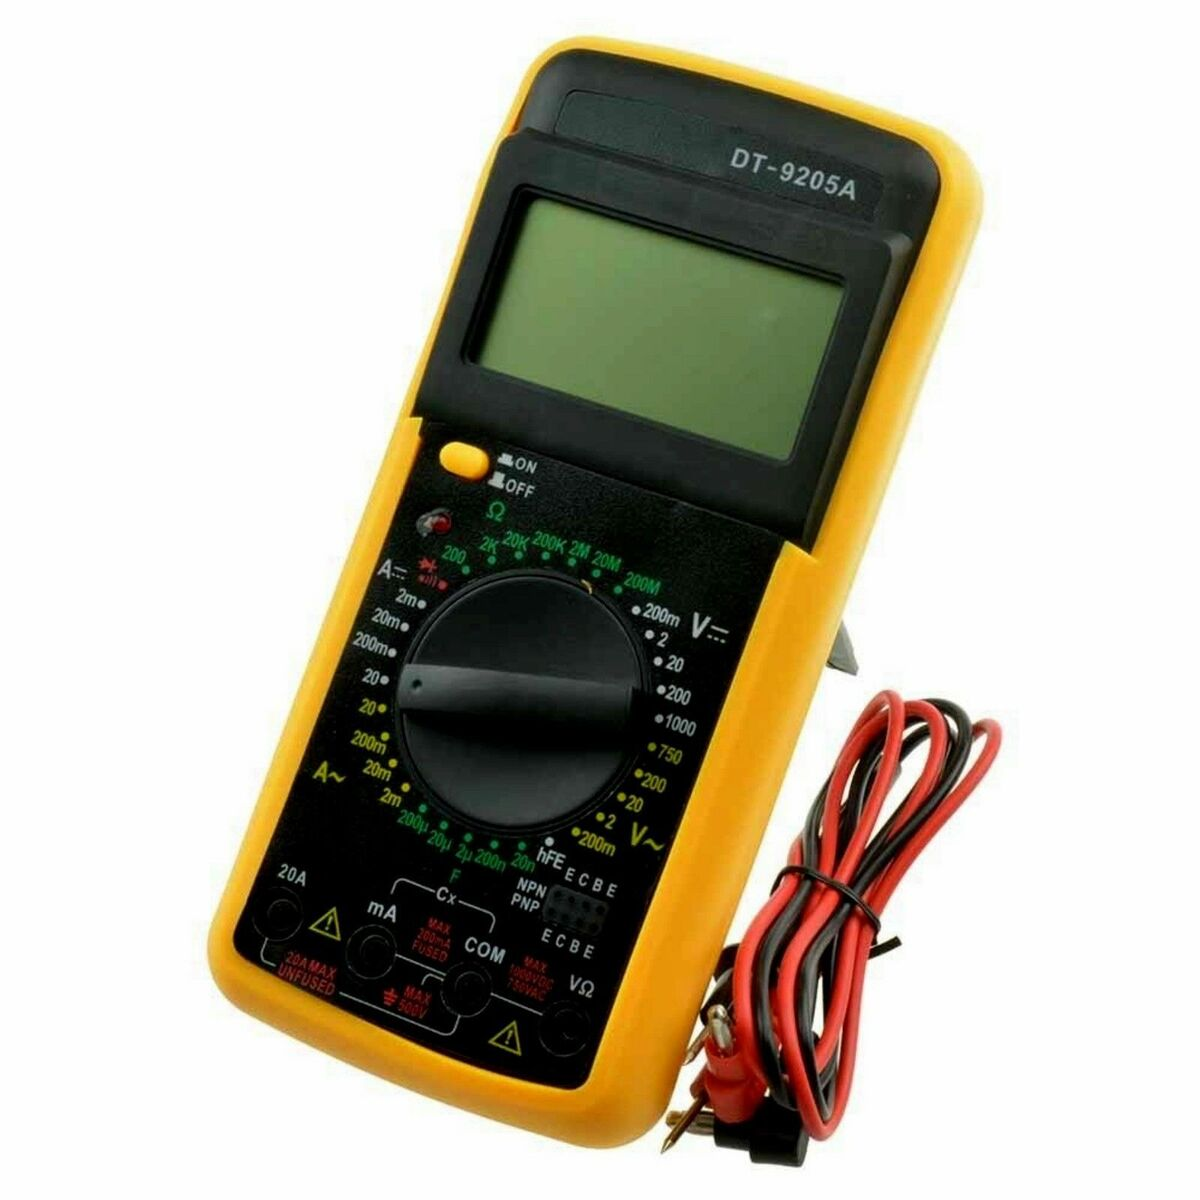 Tester digitale multimetro multimeter professionale new 